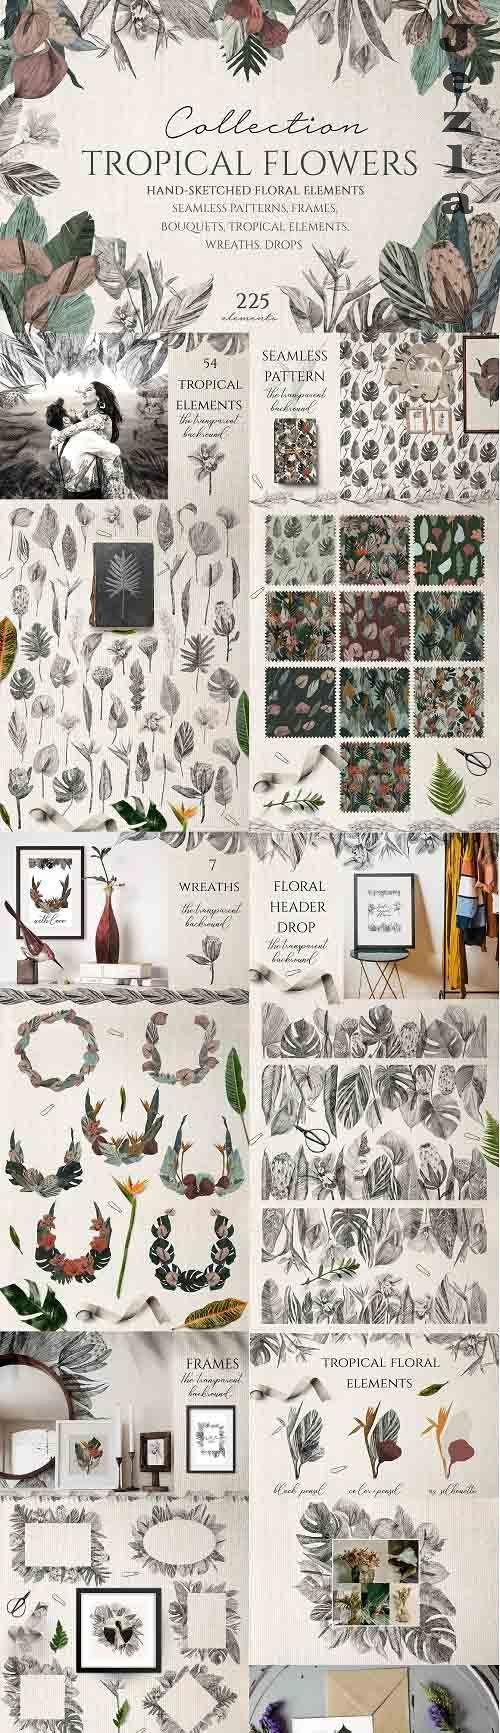 Tropical Flowers Collection - 5648678